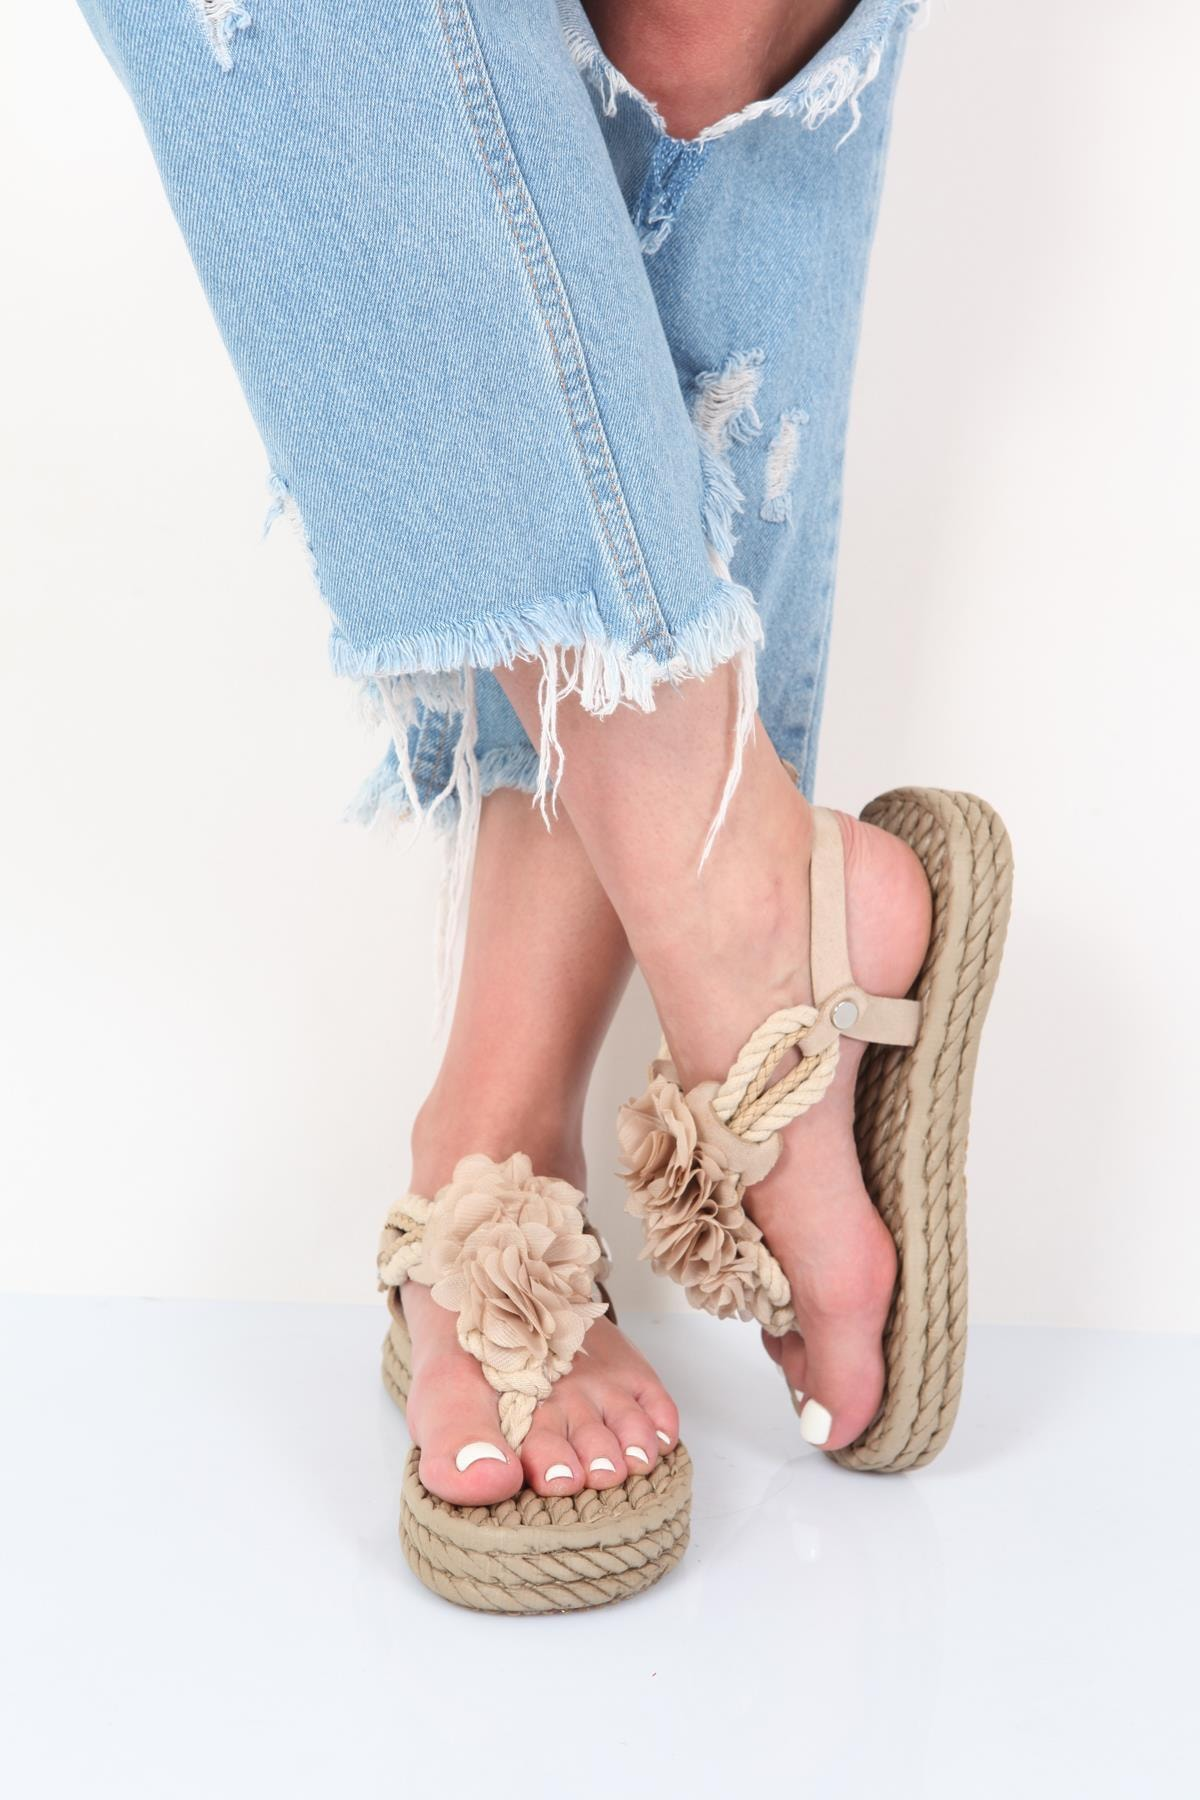 New Fashion Casual Ladies Handmade Straw Slippers Summer Home Sandals Breathable Shoes, Female Beach Street Party Shoes jarycorn shoes women s straw slippers new couple shoes handmade chinese style comfortable sandals2020 summer fashion unisex home